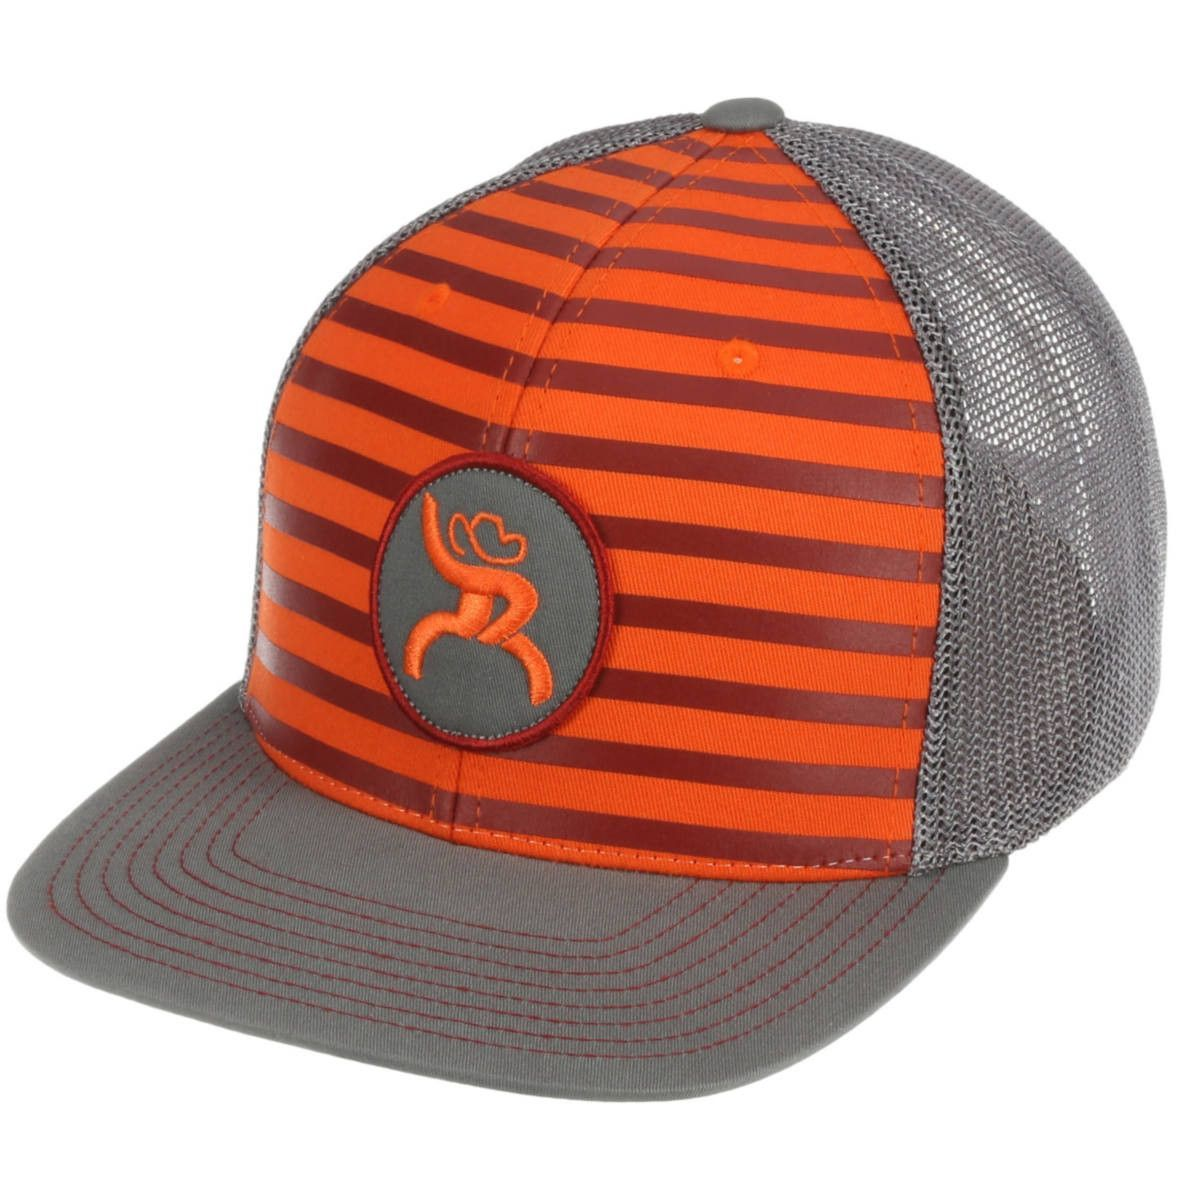 best website cf2ce 40e17 ... inexpensive hooey hat youth maroon orange chute roughy snapback trucker  ball cap 4322t gyma ca952 25e7a